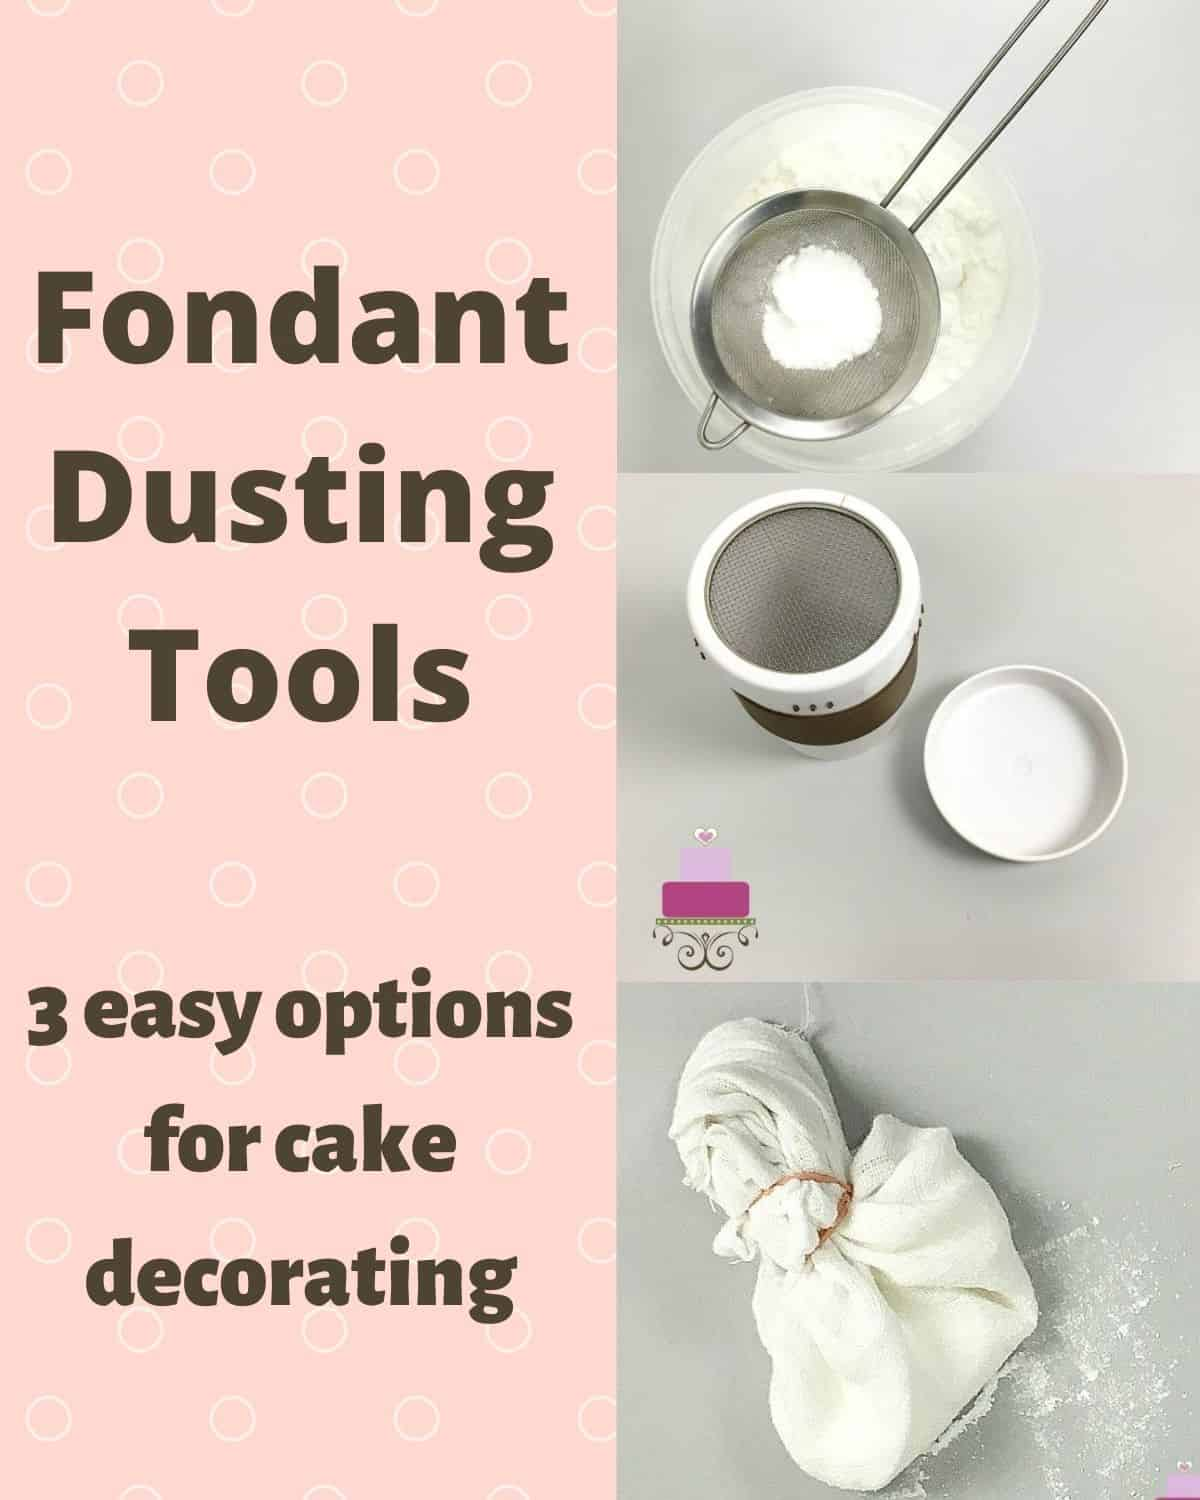 Poster for dusting tools showing a sieve with icing sugar, an icing sugar shaker and a cloth pouch tied with rubber band